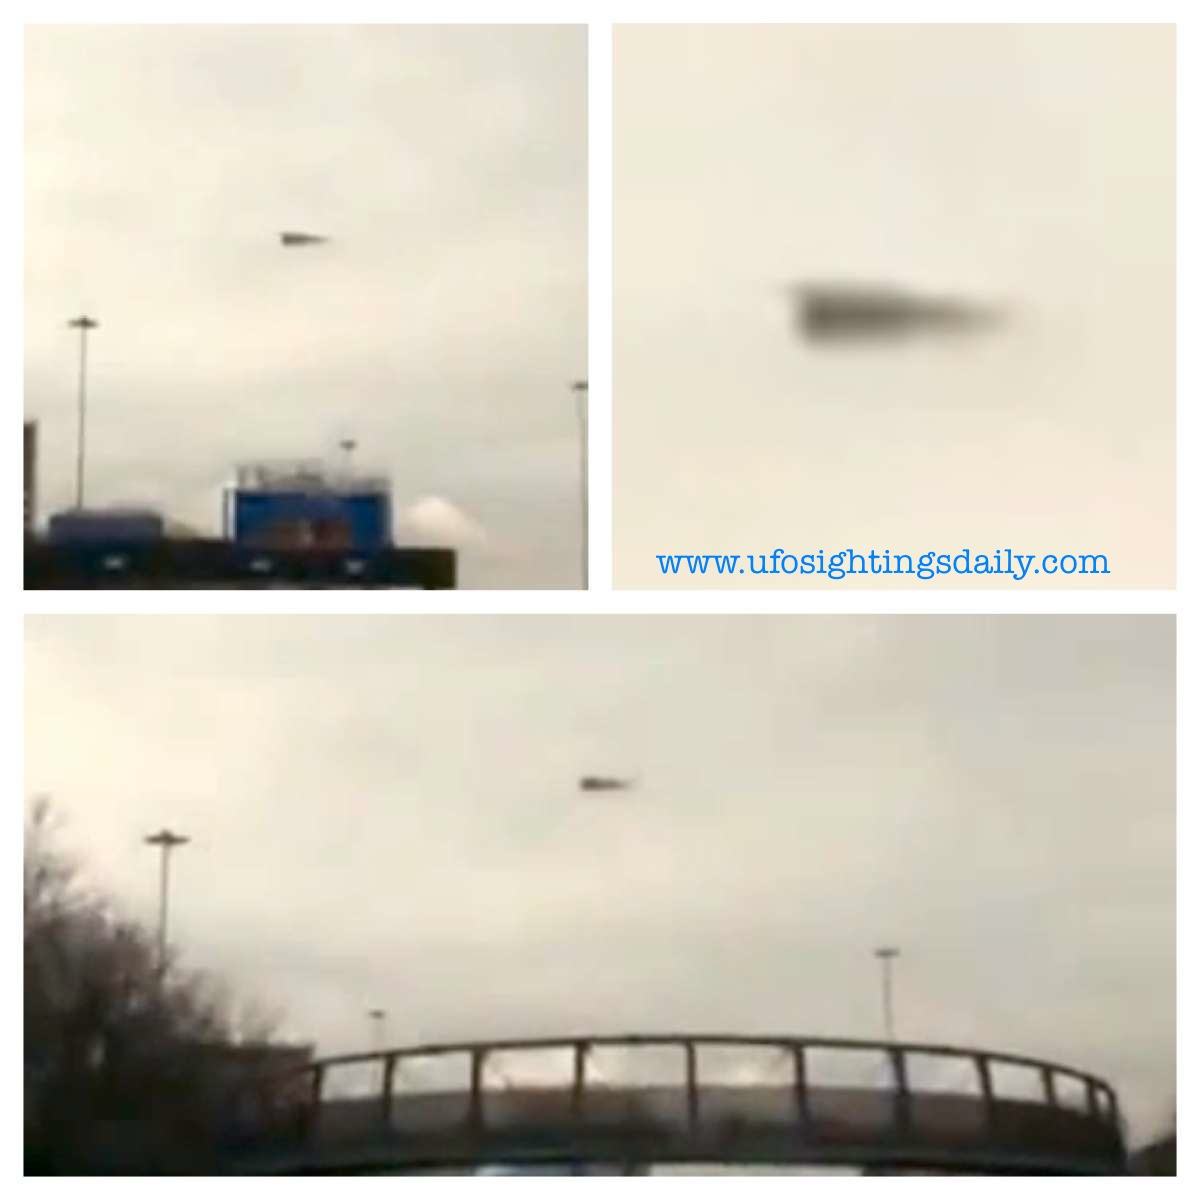 150 foot ufo over manchester england on april 2013